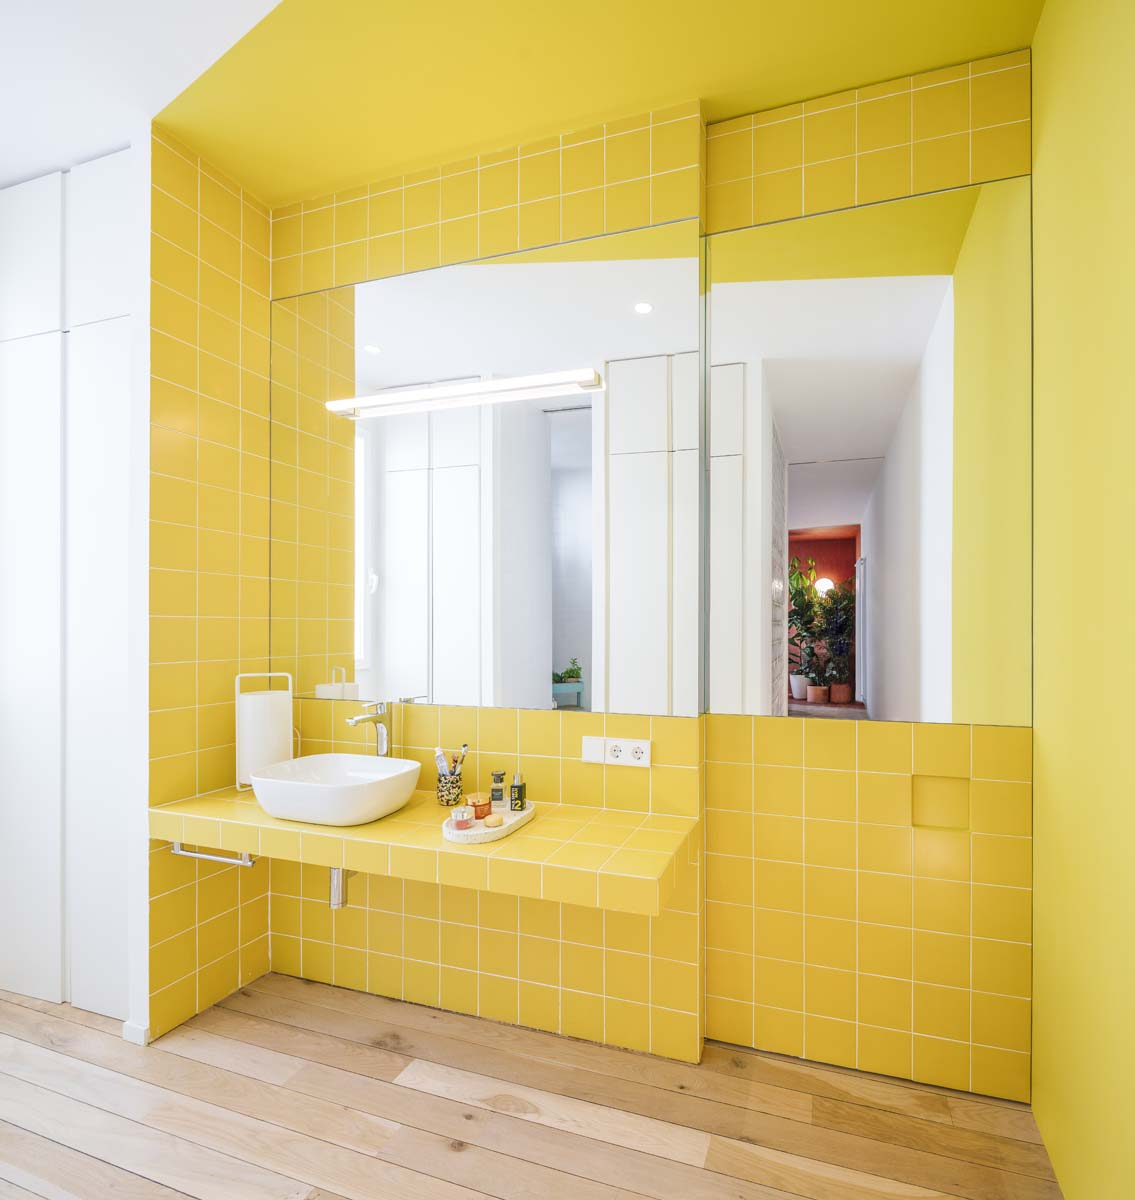 20-mattonelle-bagno-idee-appartamento-madrid-gon-ana-torres-foto-imagen-subliminal-living-corriere